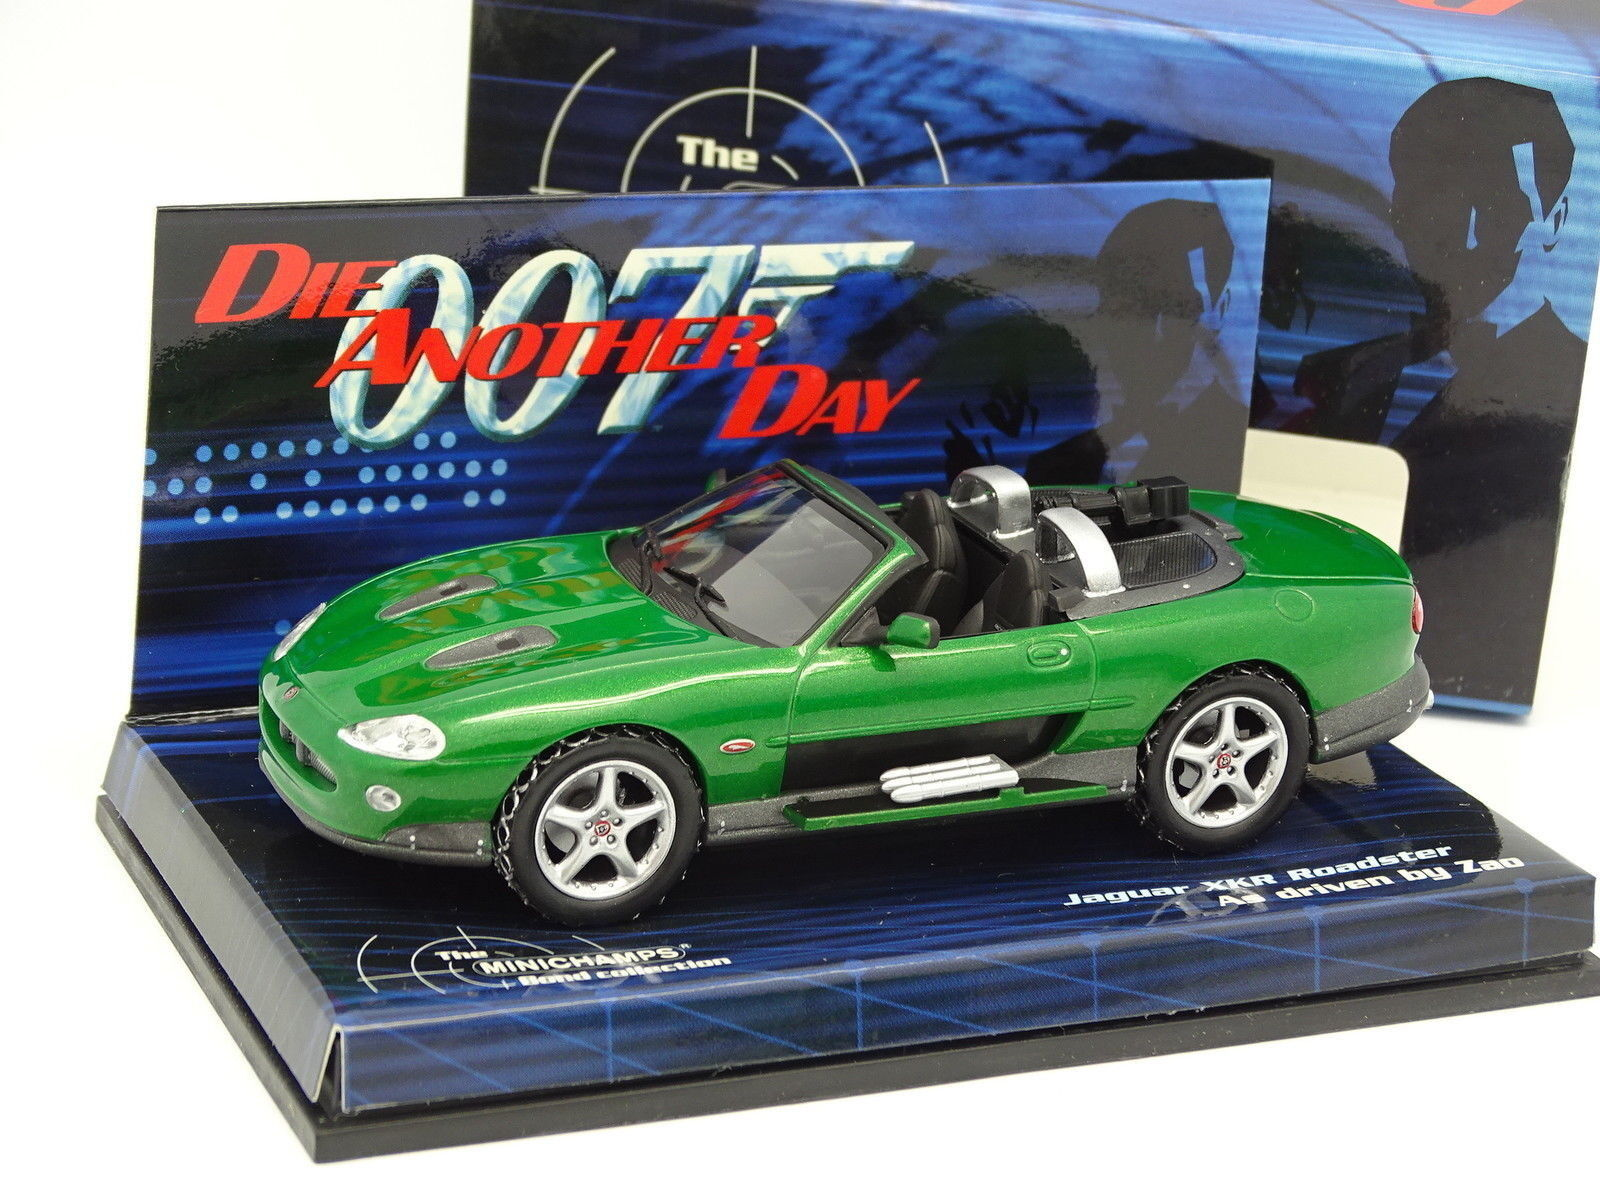 Minichamps 1 43 - Jaguar XKR Roadster 007 Bond